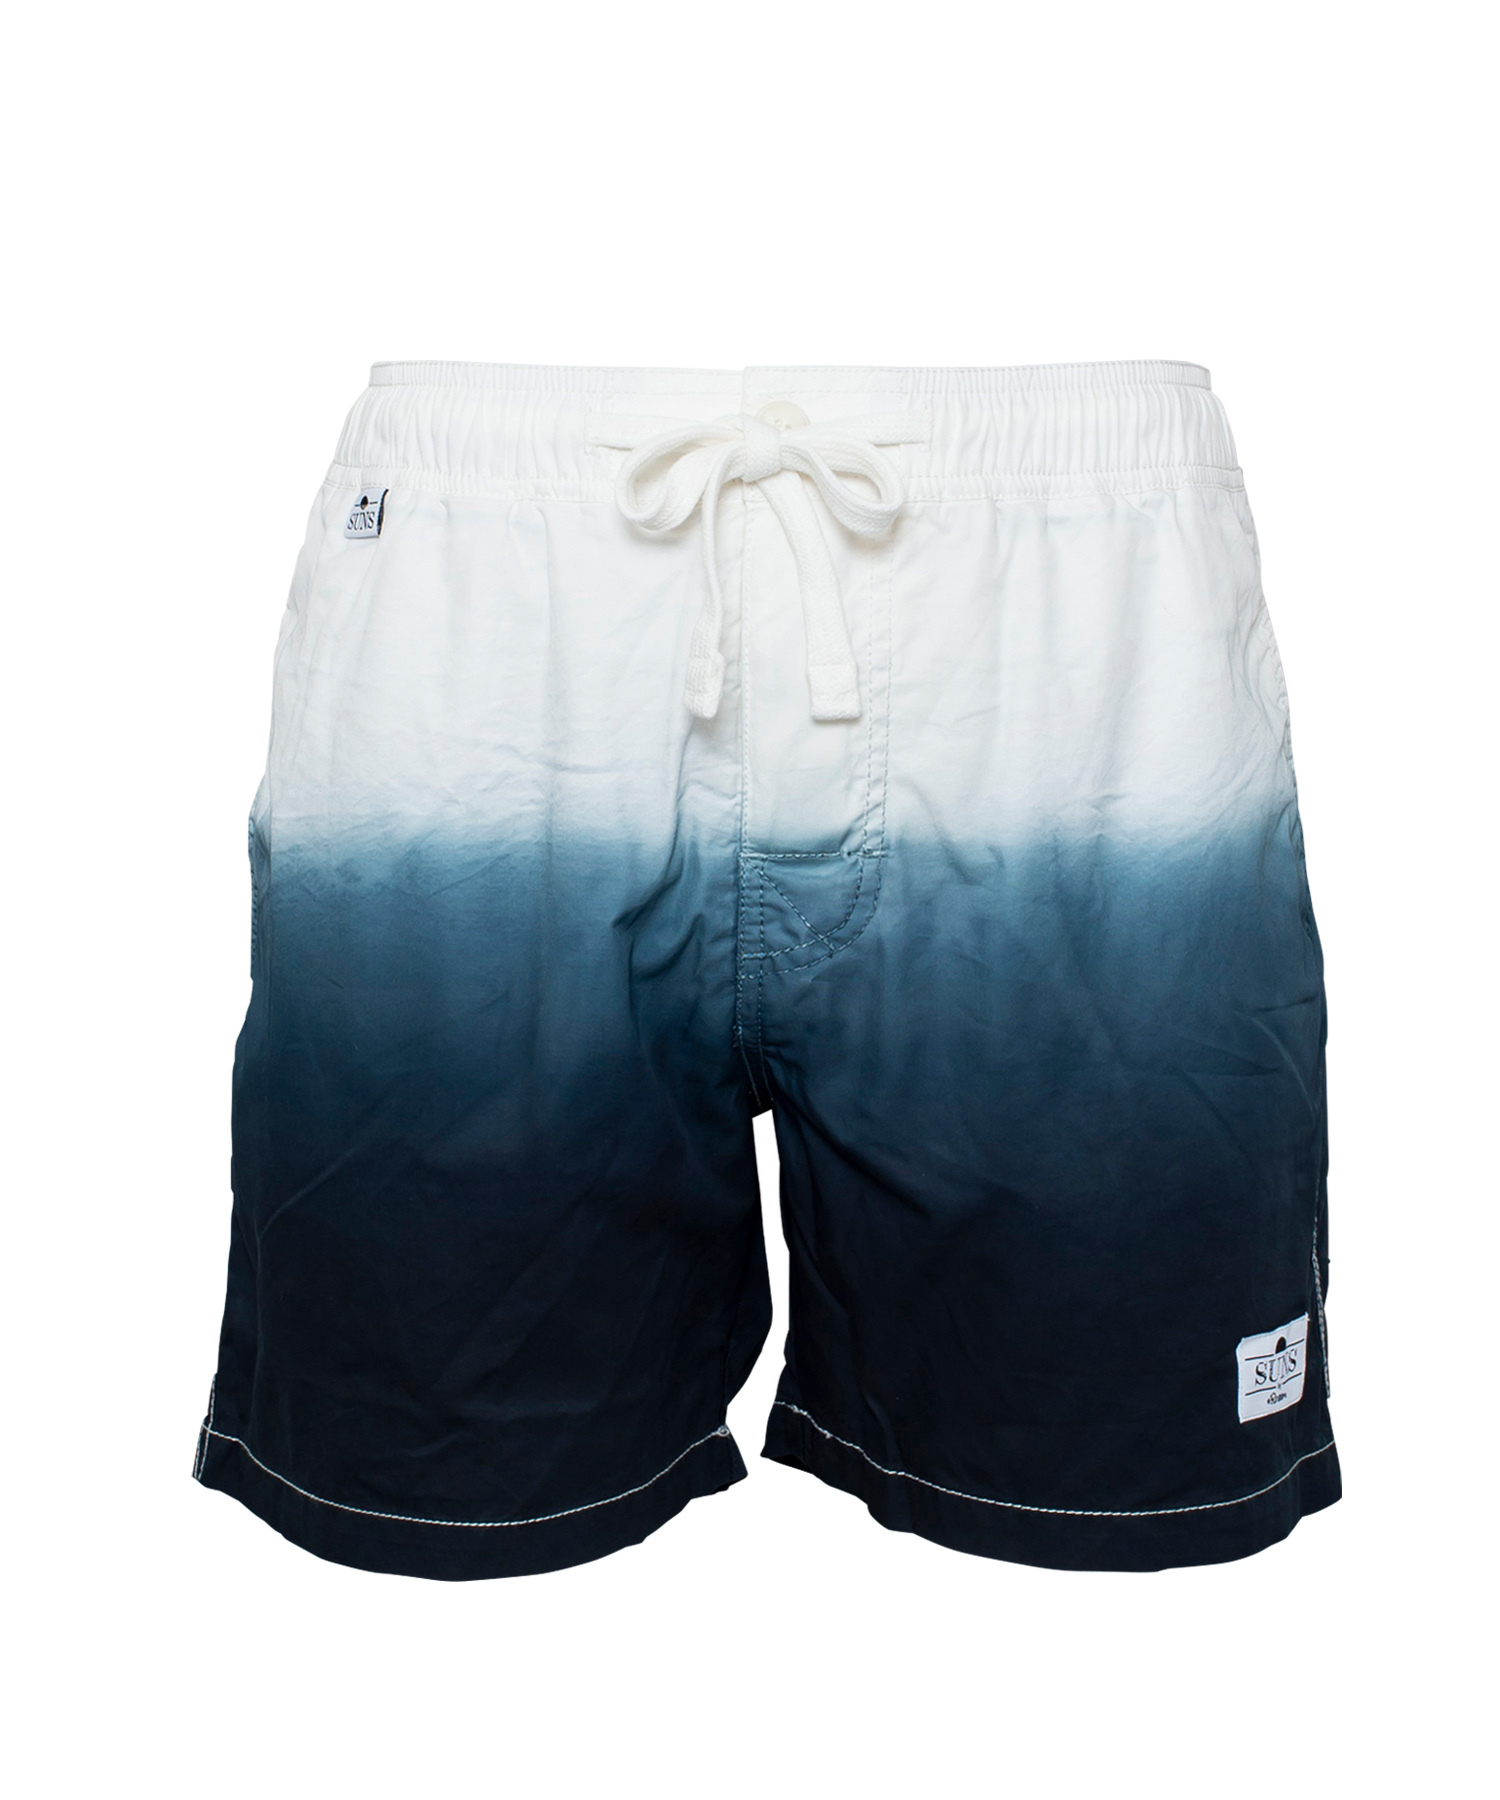 SUNS GRADATION COTTON SWIM SHORTS[RSW012]